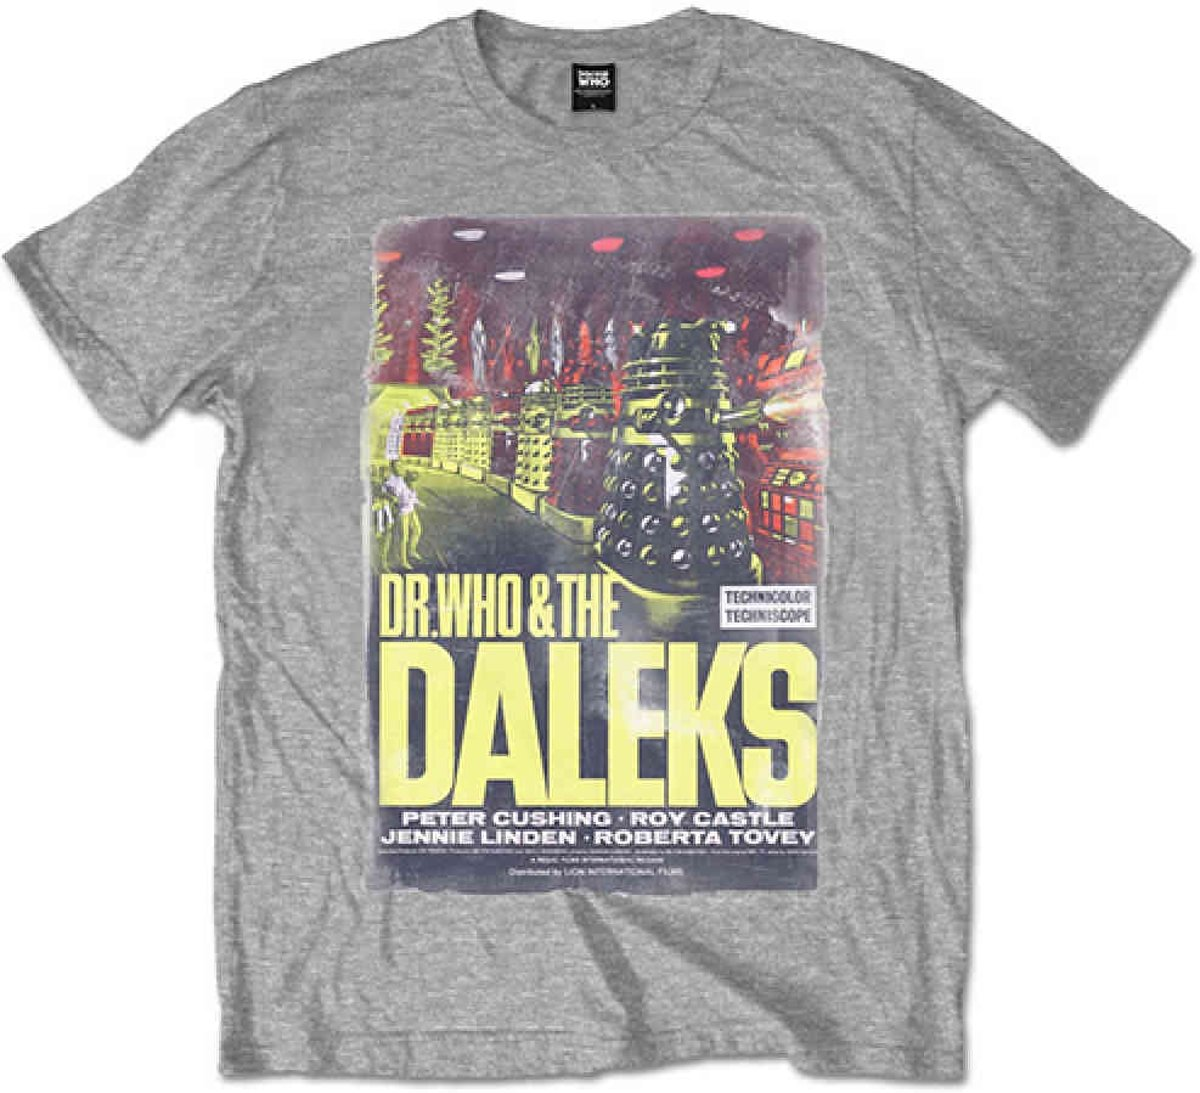 Dr Who - Daleks heren unisex T-shirt grijs - XL